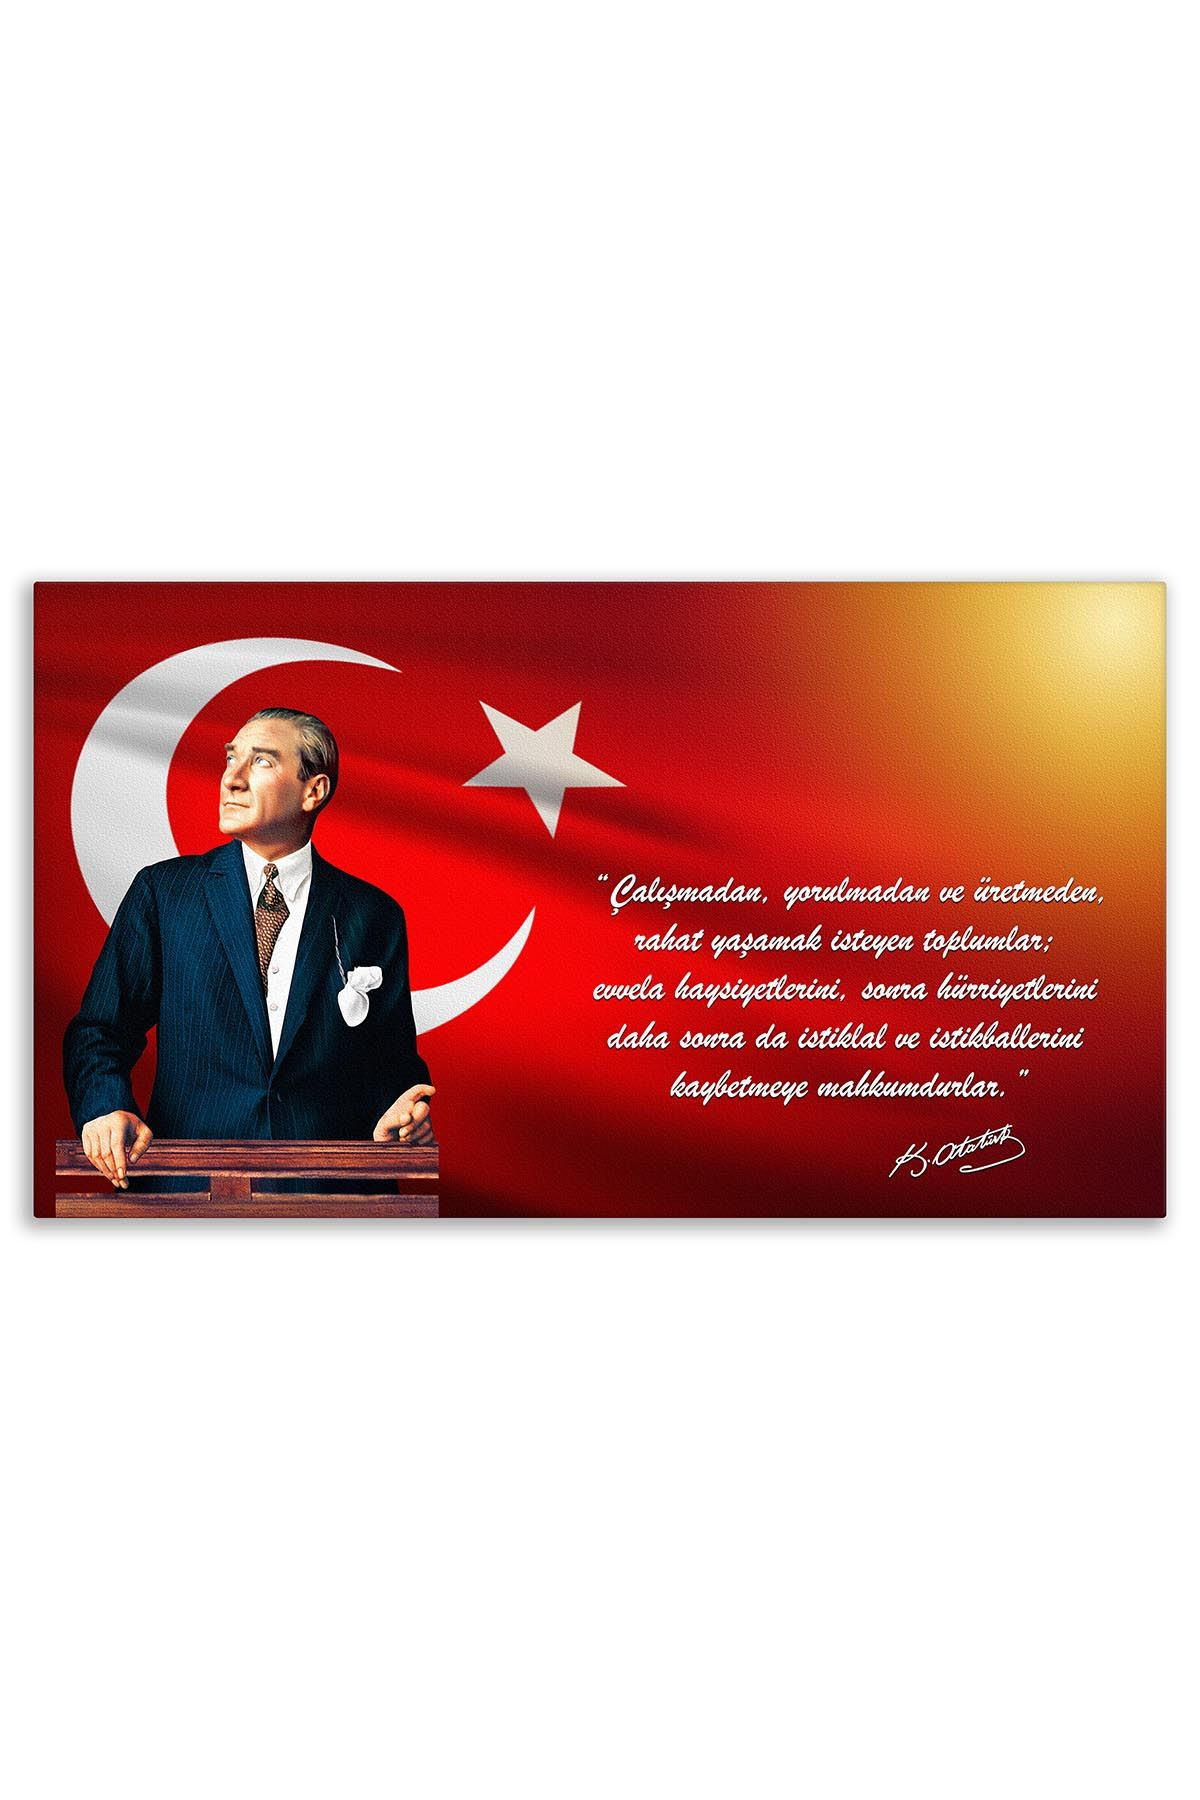 Ataturk Canvas Board | Printed Canvas Board | Customized Canvas Board | Digital Printing